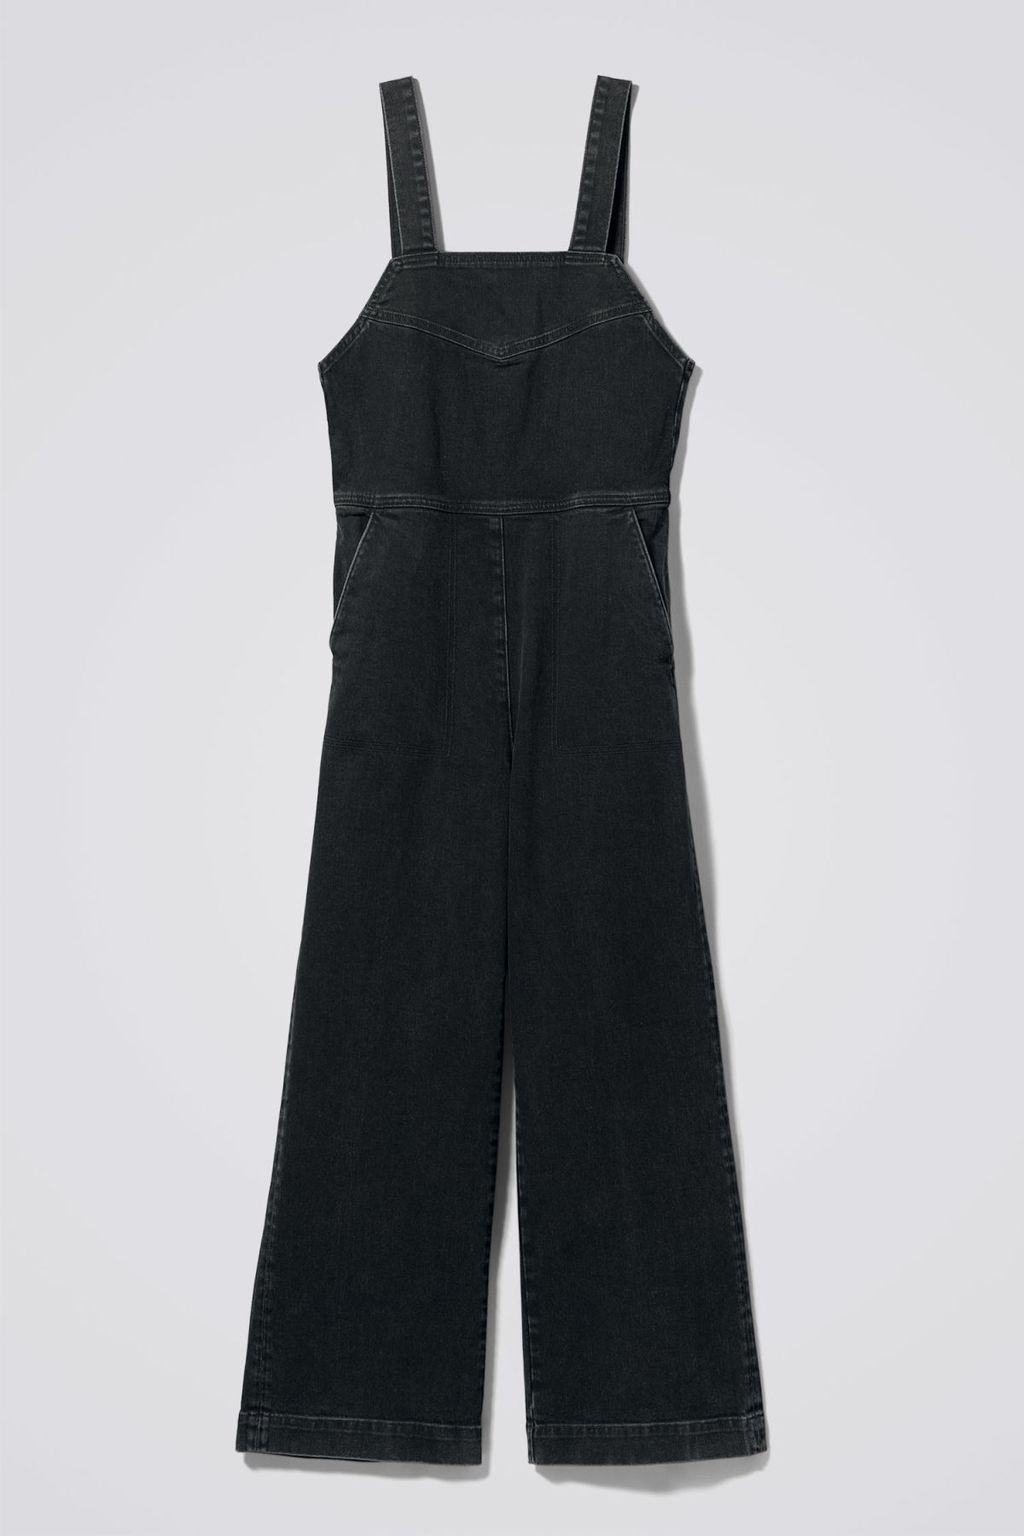 preview of lowest discount largest selection of 2019 Junip Denim Jumpsuit - Weekday | reve